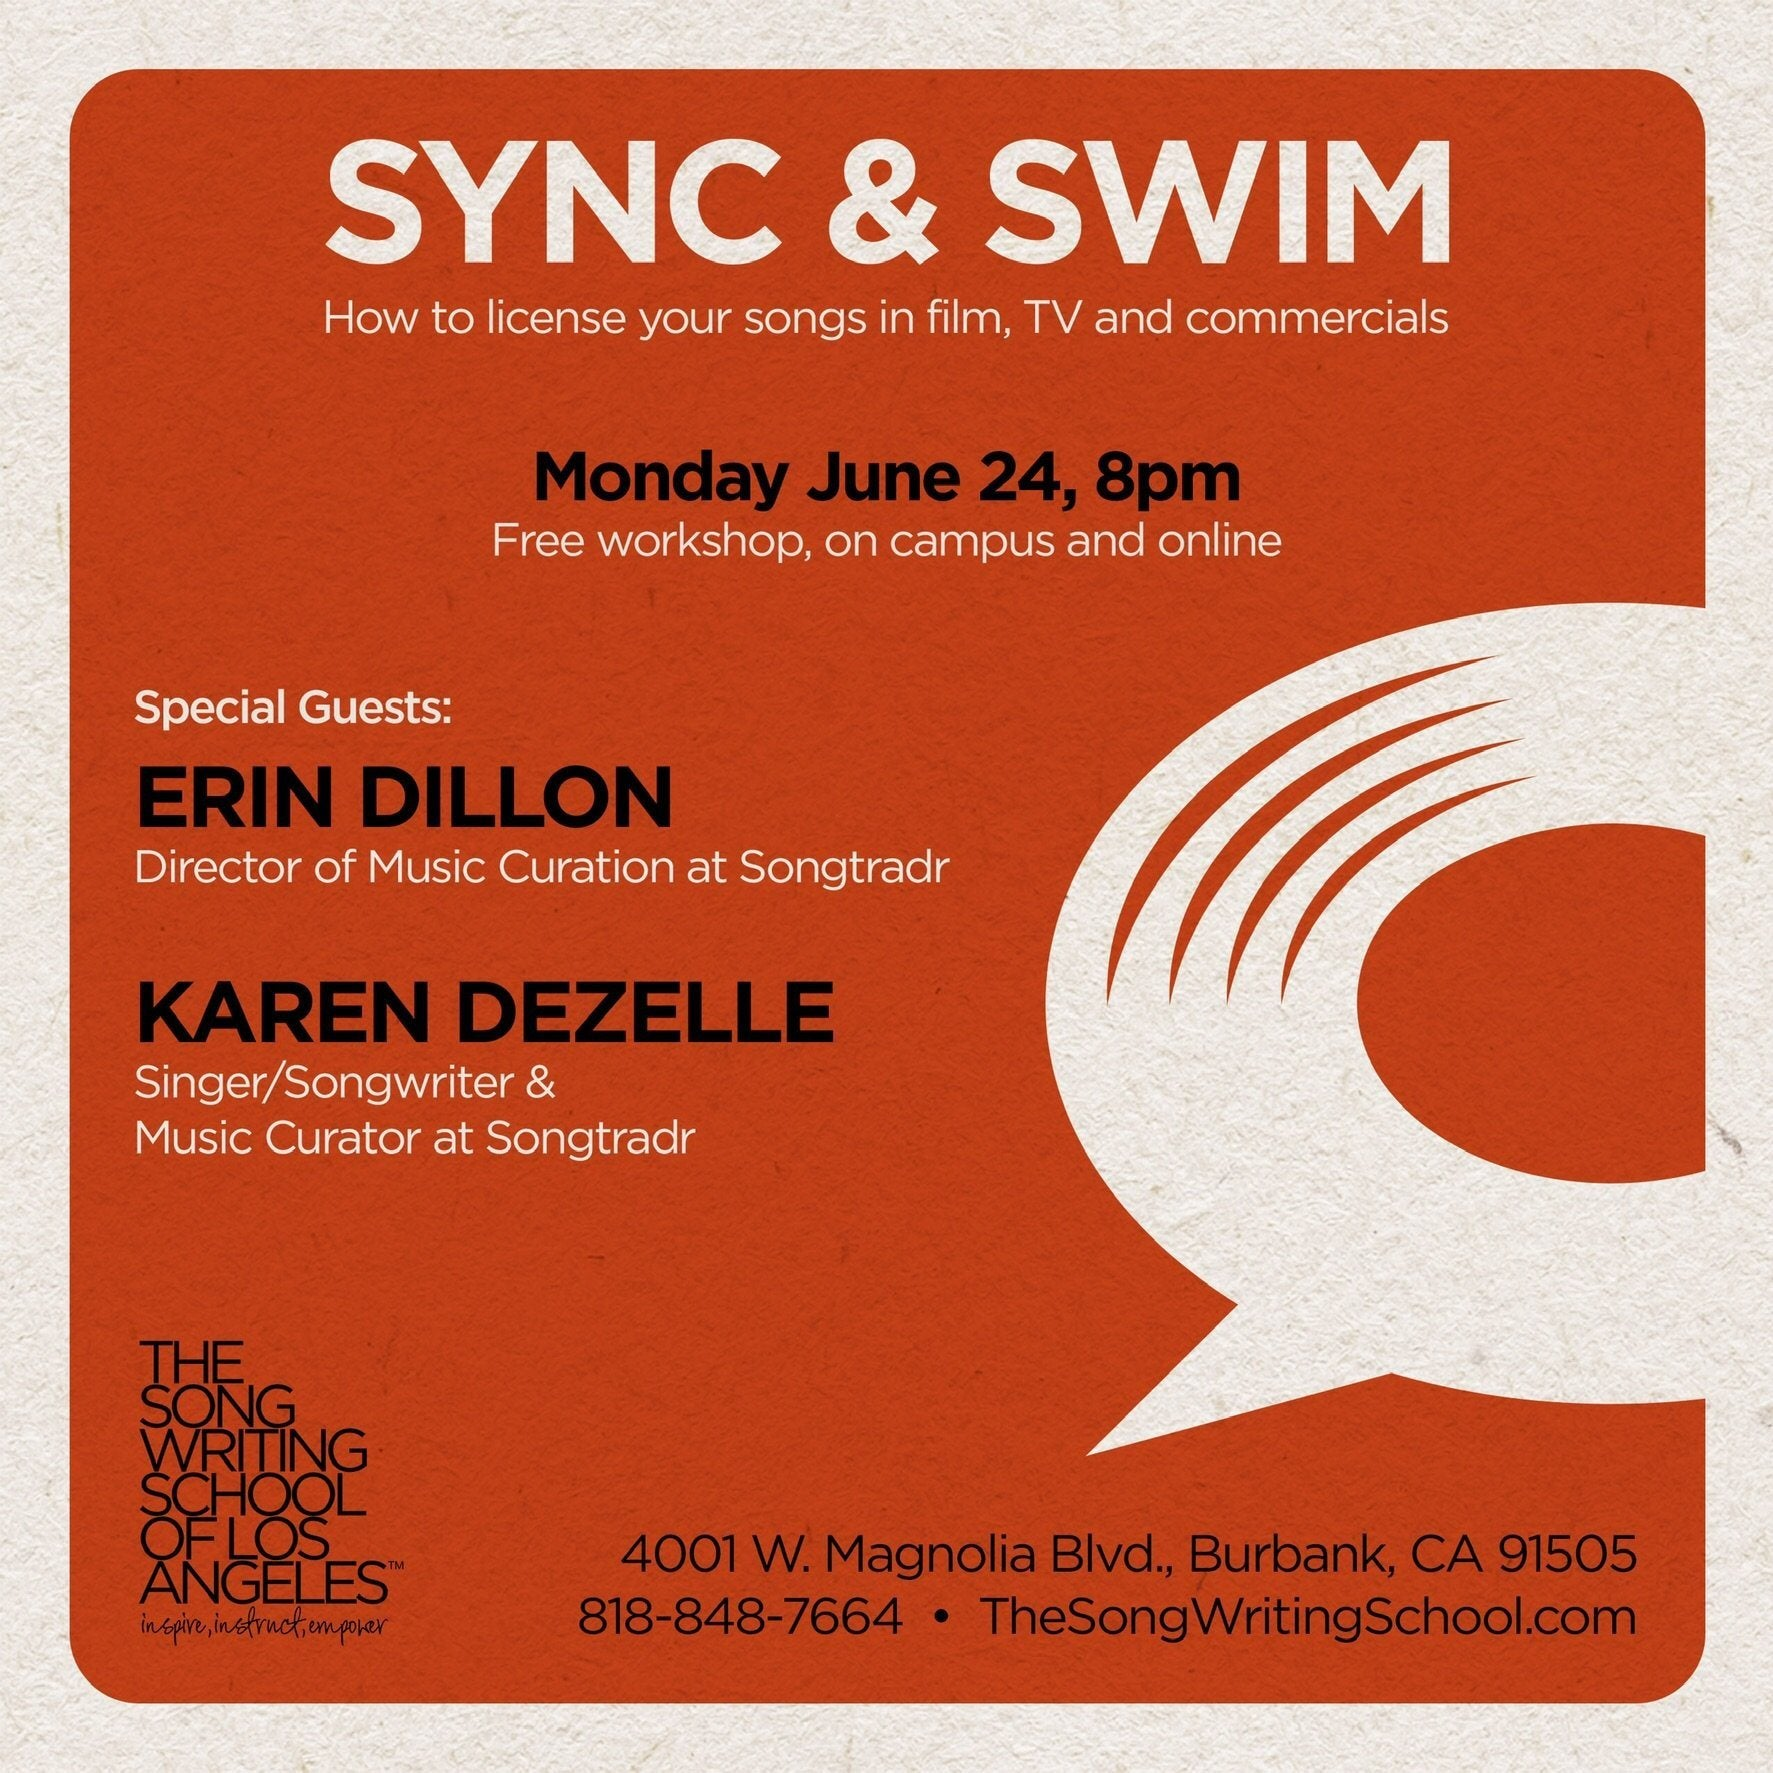 FREE EVENT: SYNC & SWIM - How to License Your Songs in Film